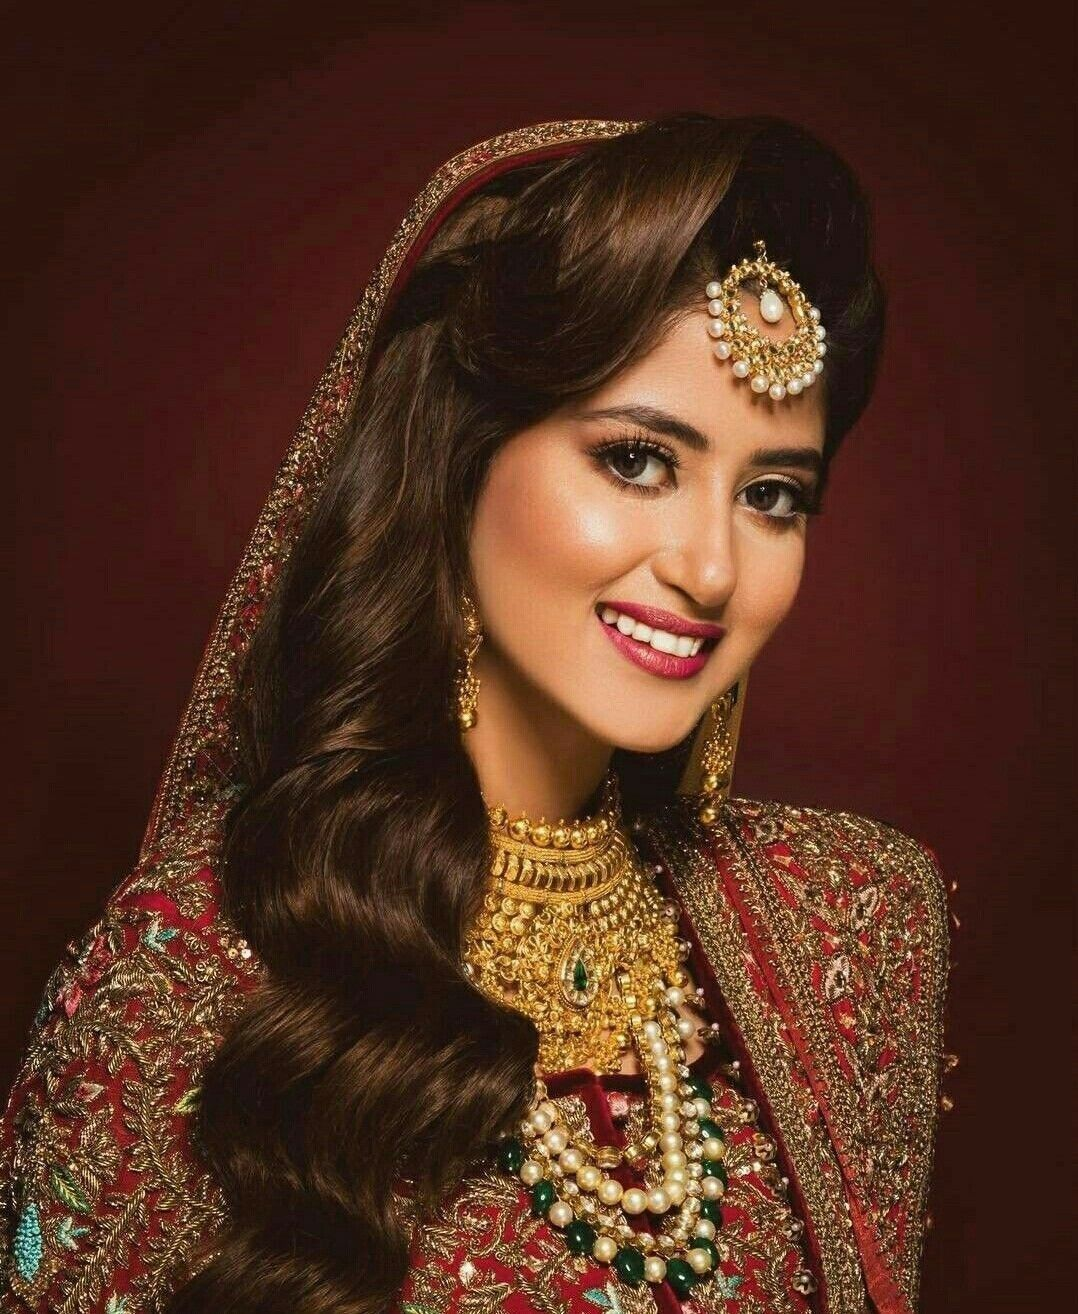 pin by suman zulfiqar on makeup | pakistani bridal wear